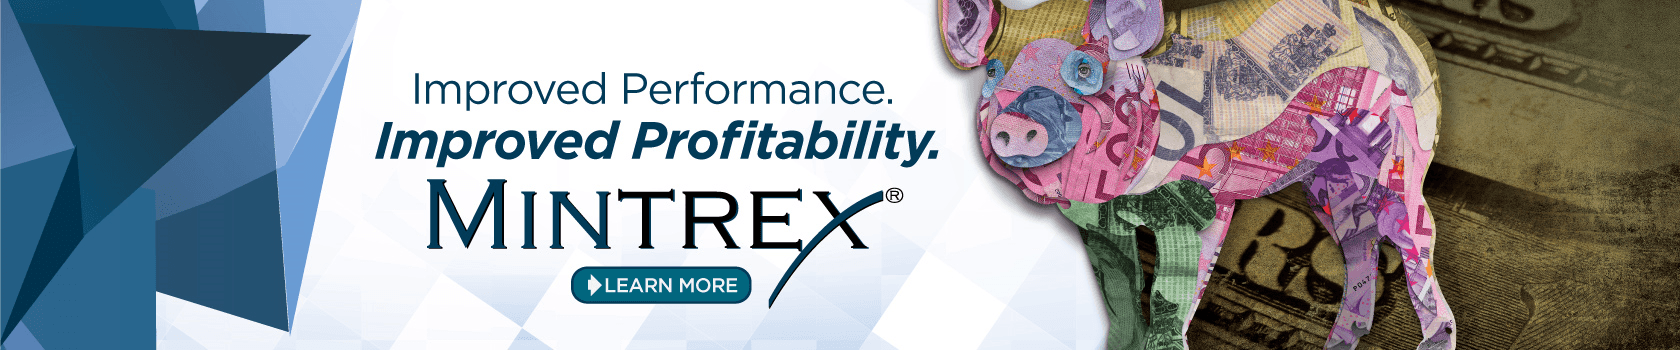 Benefits of MINTREX improved bioavalaibility in swine